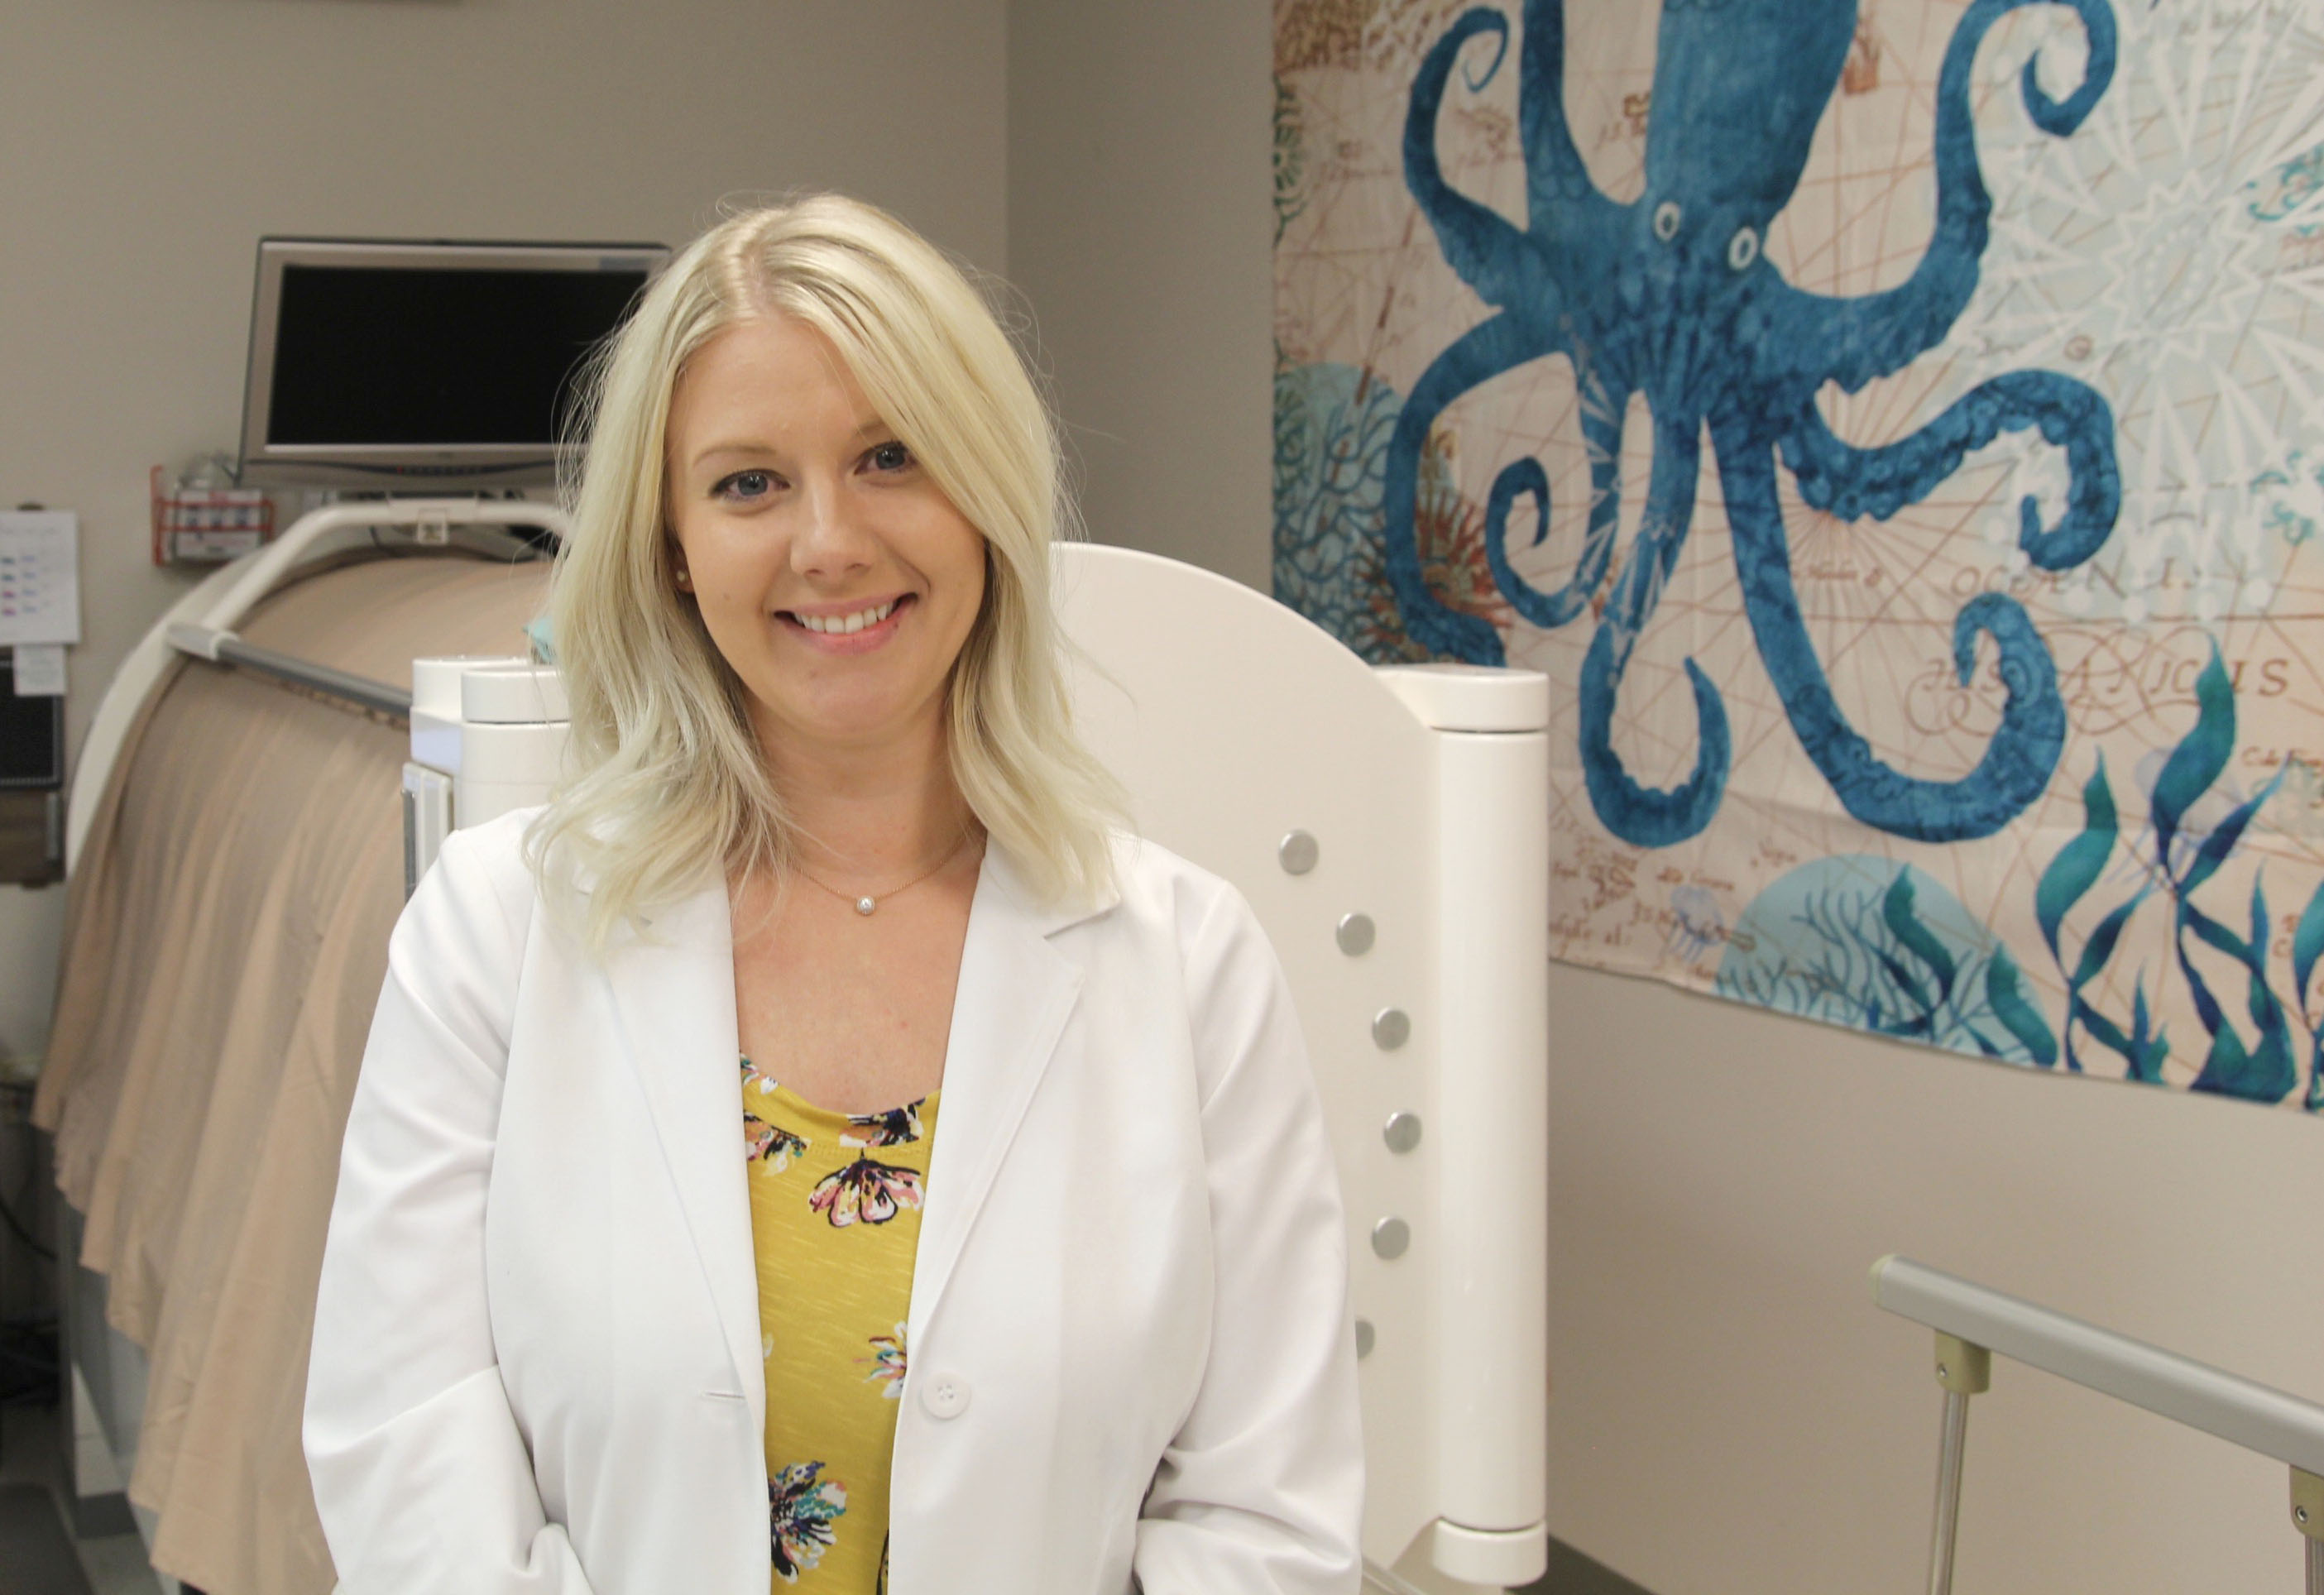 Lynsey Sullivan stands in front of a machine at her workplace. A blue octopus is painted on the wall on the right side of the image.